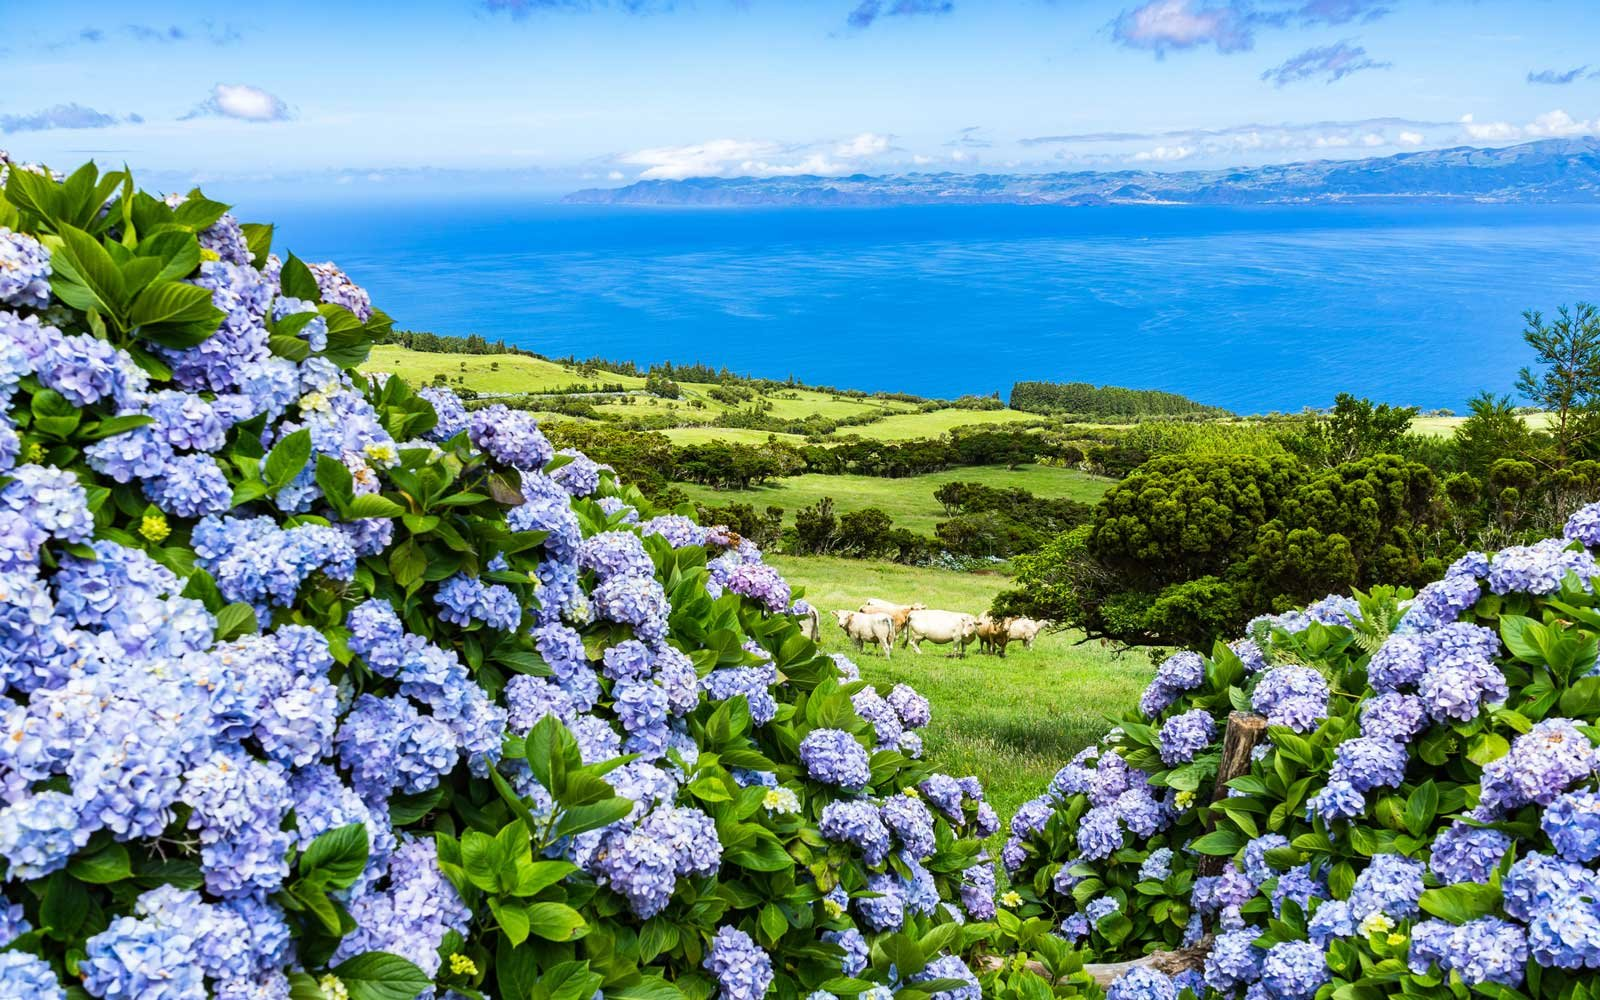 Azores Islands and hydrangeas